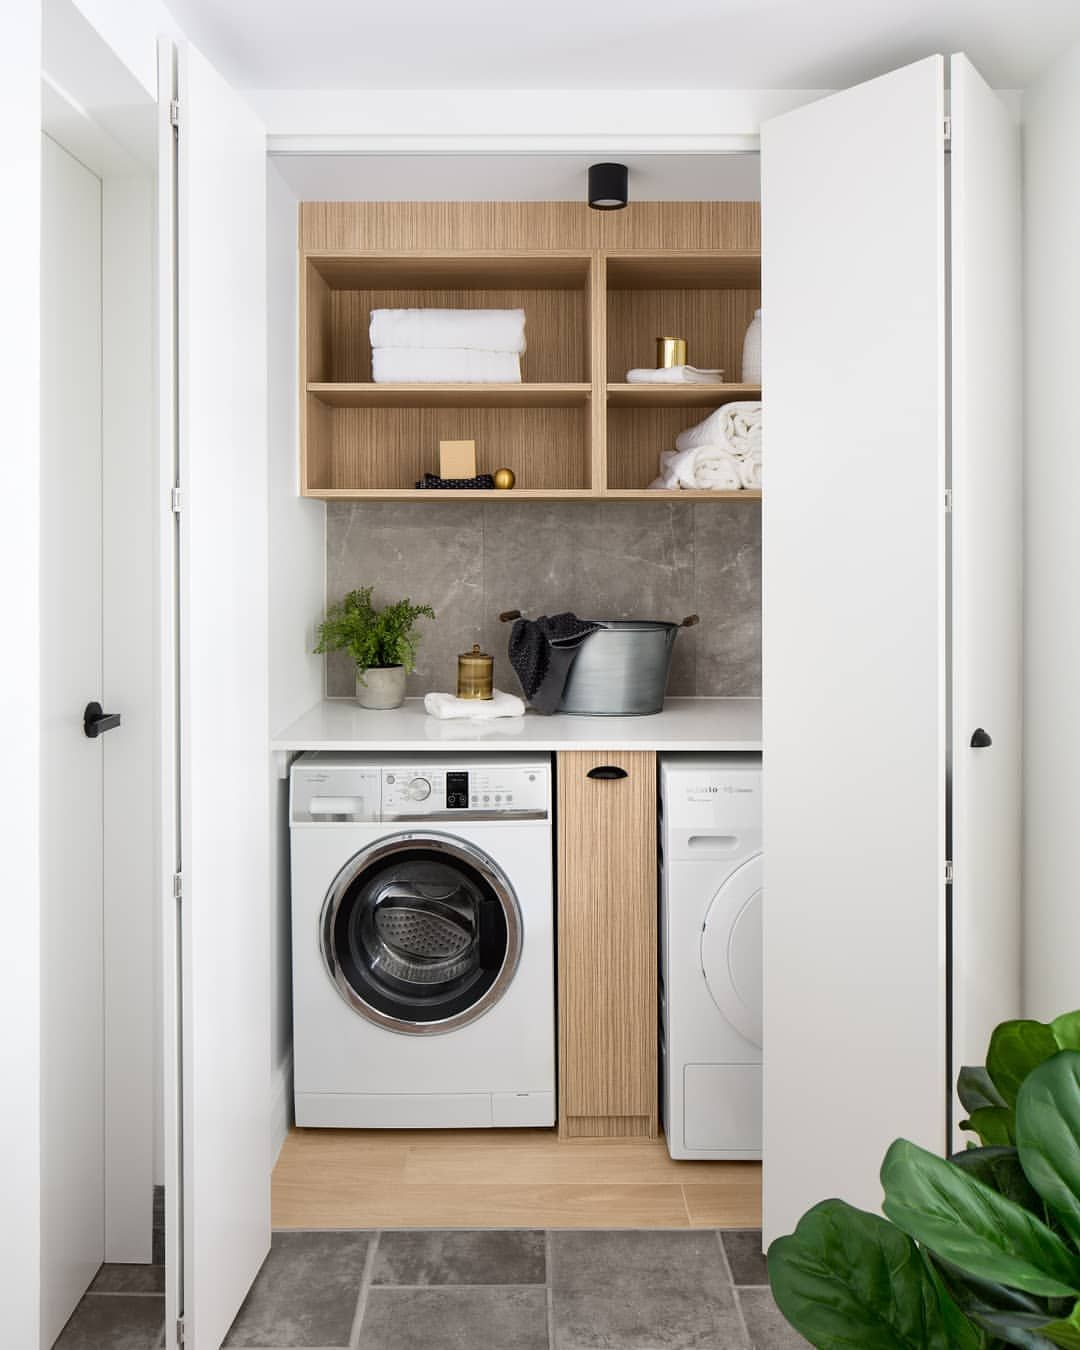 Who Would Ve Thought A Laundry Cupboard Could Be Such A Feast For The Eyes Malverneastproject Laundry Cupboard House And Home Magazine Laundry Room Design